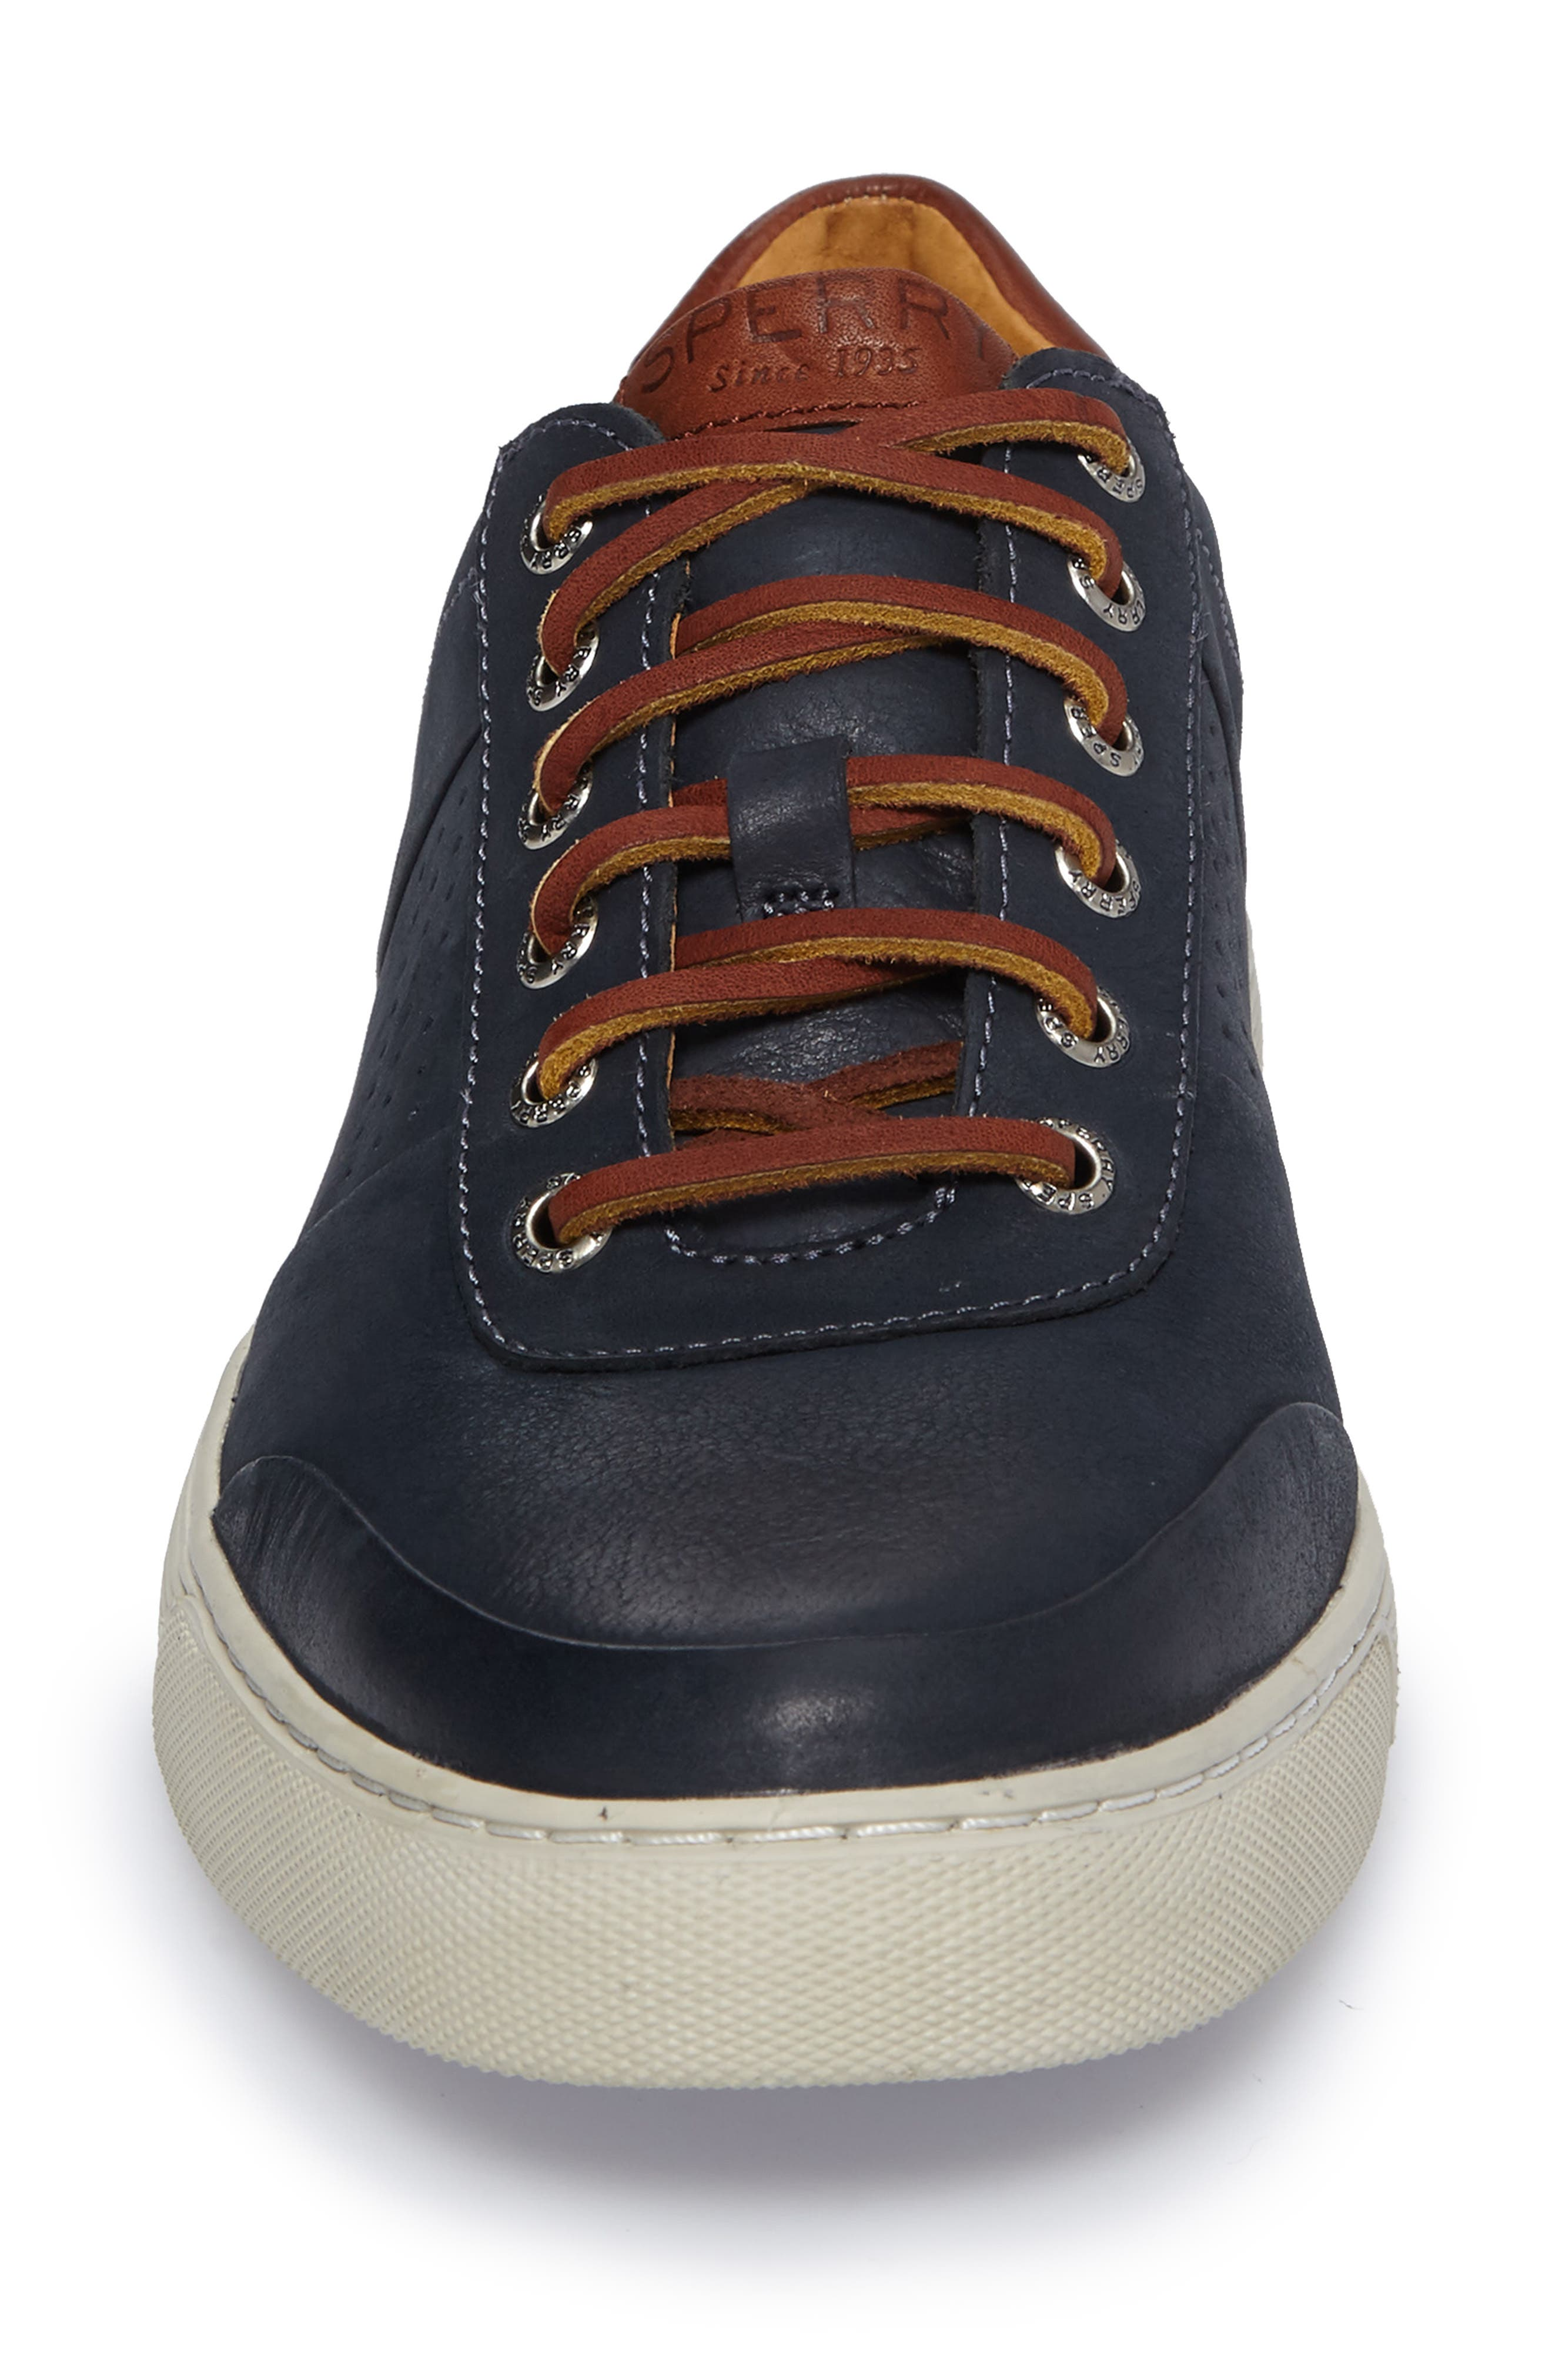 Gold Cup Sport Sneaker,                             Alternate thumbnail 4, color,                             Navy Leather